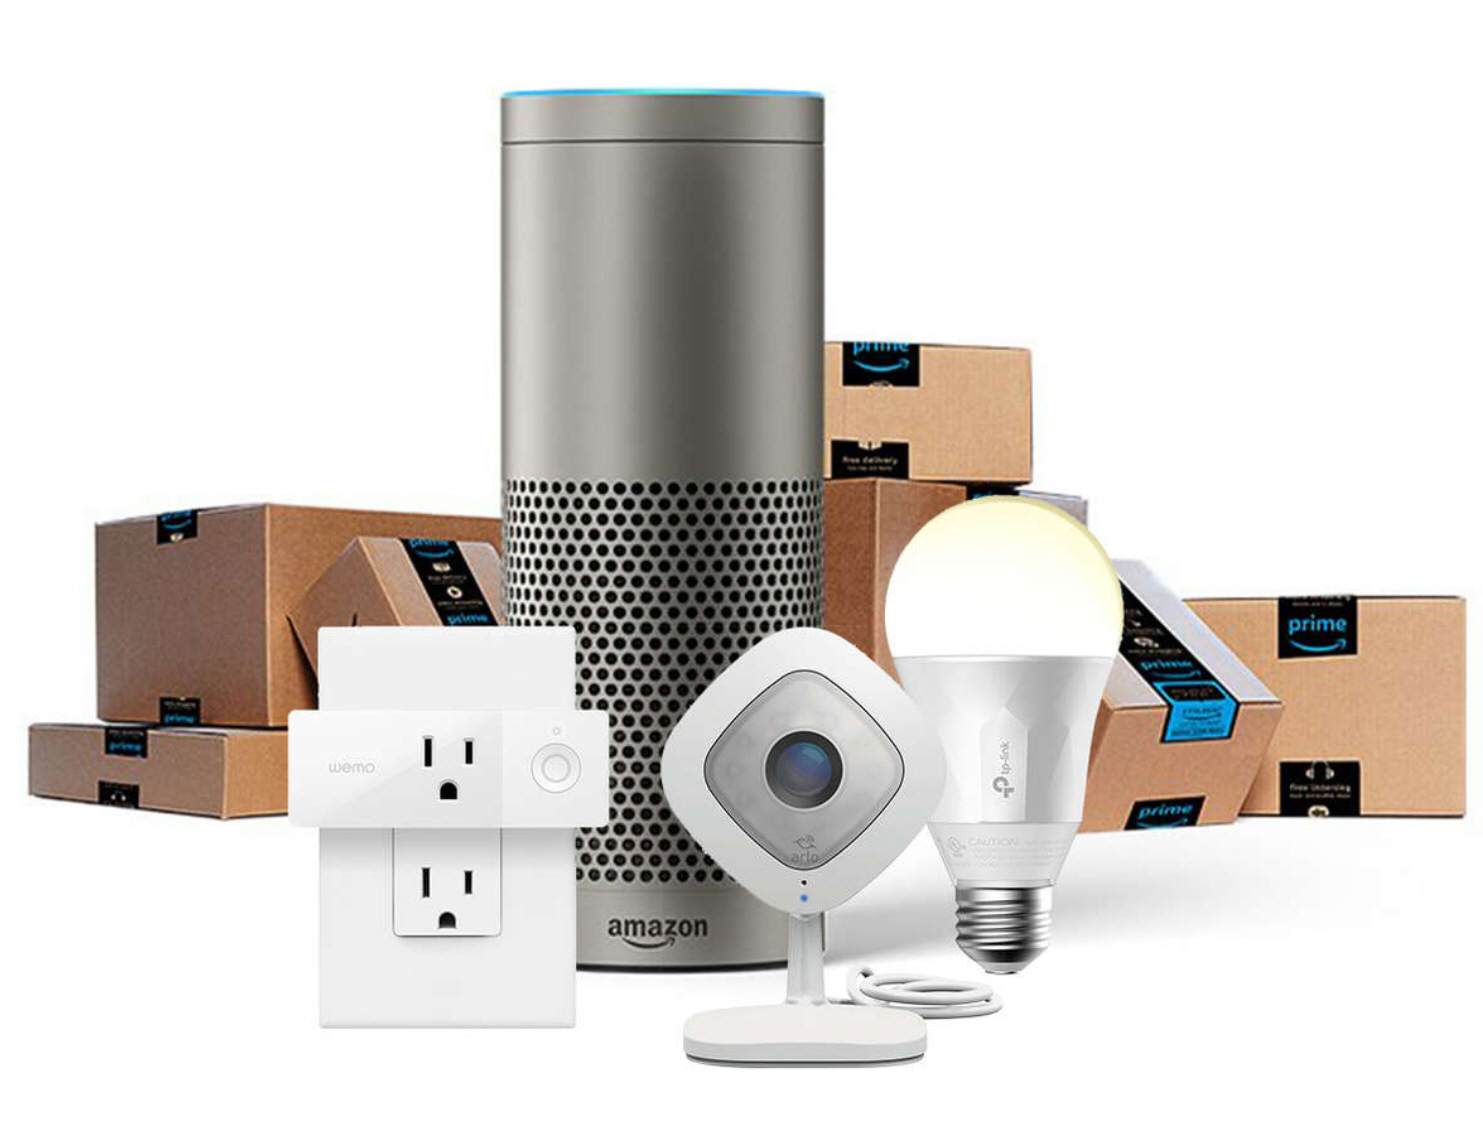 Using Amazon Smart Home to Get Started with Your Smart Home